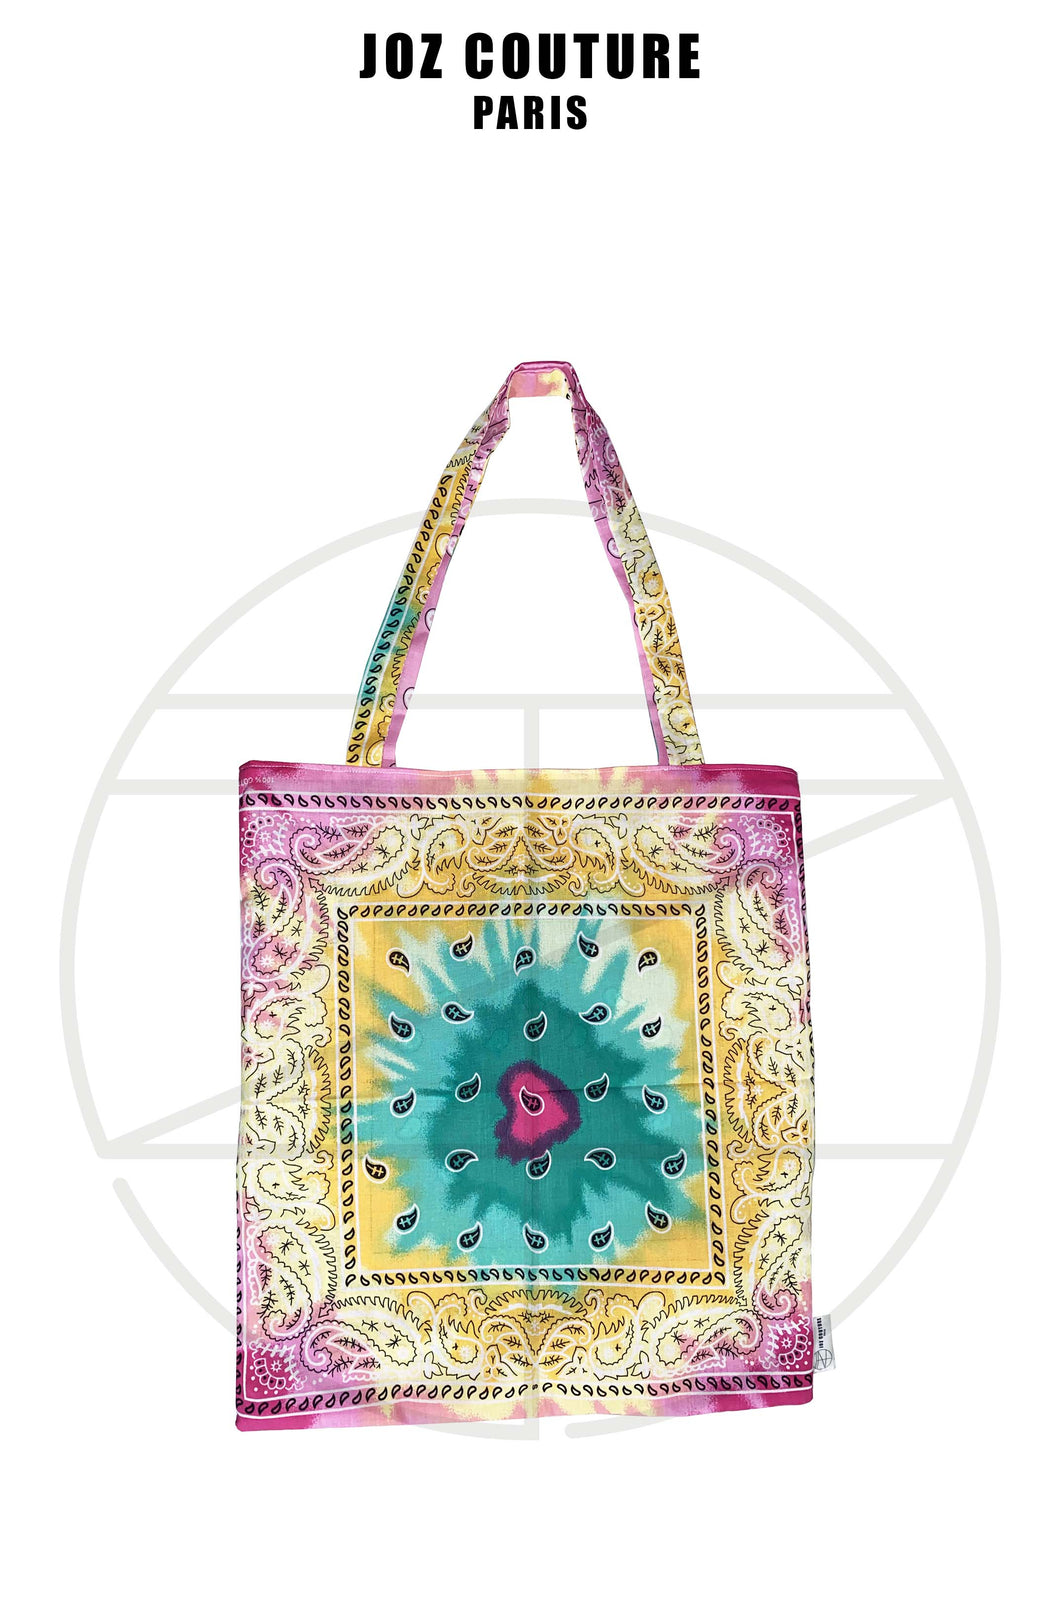 Tote bag en tissu bandana tie and dye